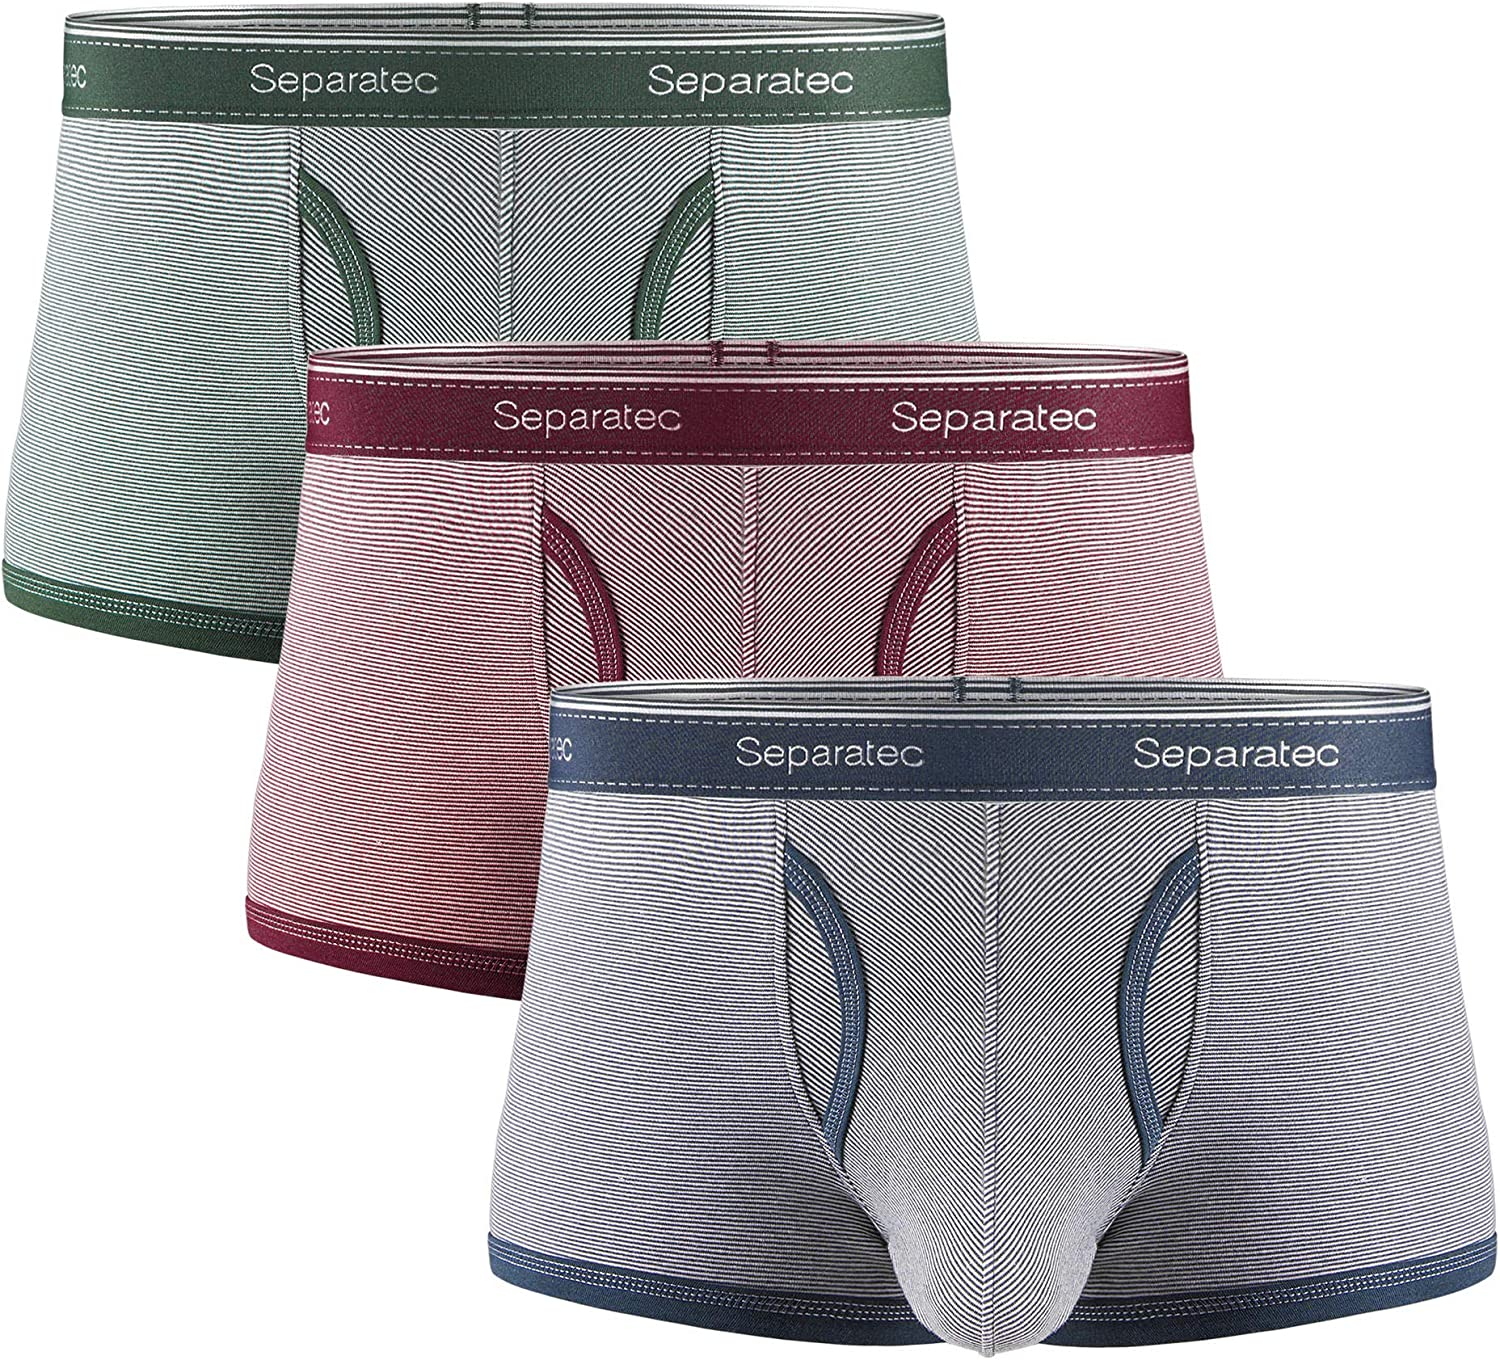 Separatec Men's Underwear Colorful Comfortable Soft Cotton Stretch Trunks 3 Pack